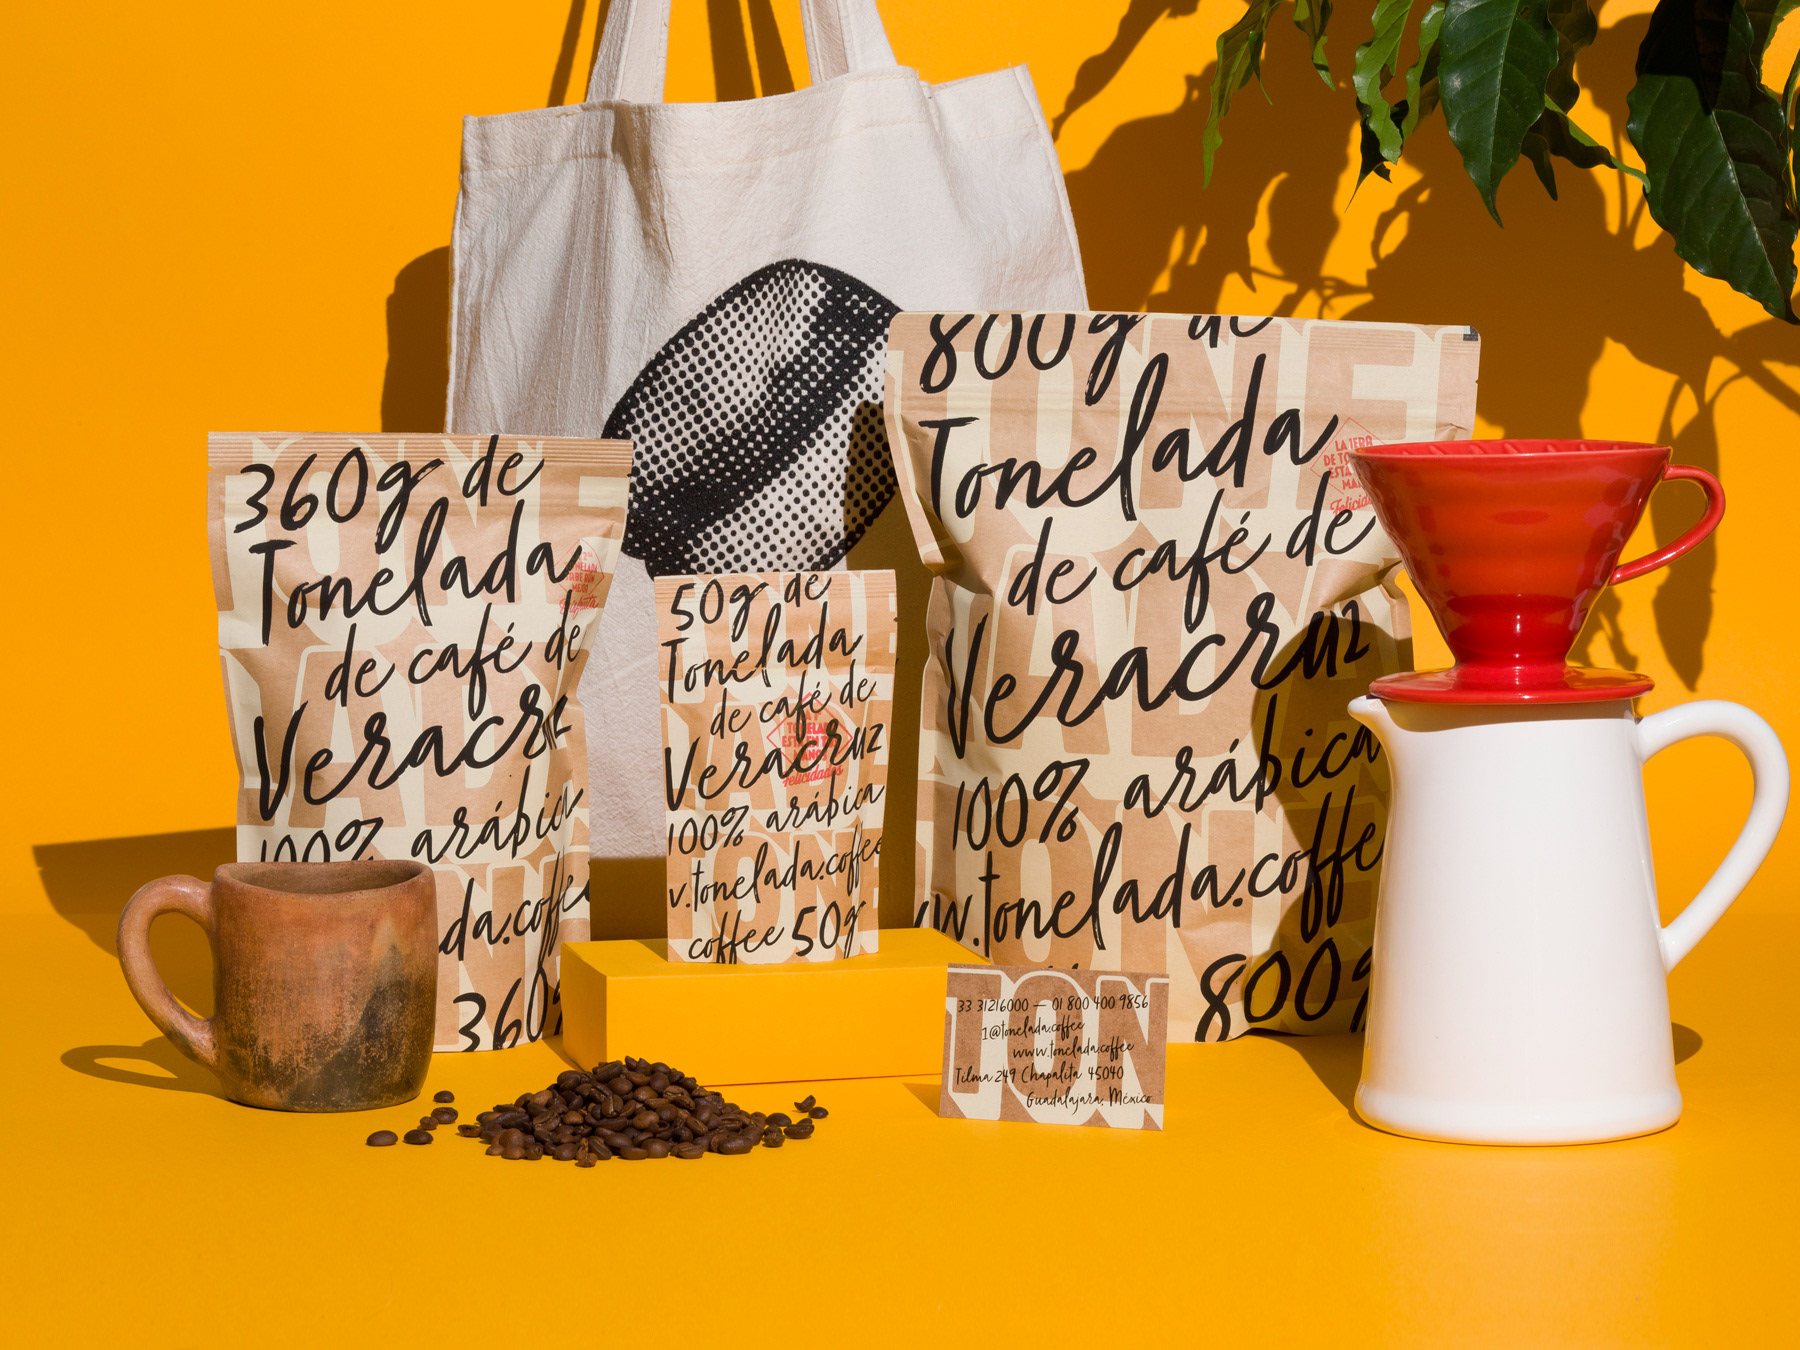 design work tonelada coffee